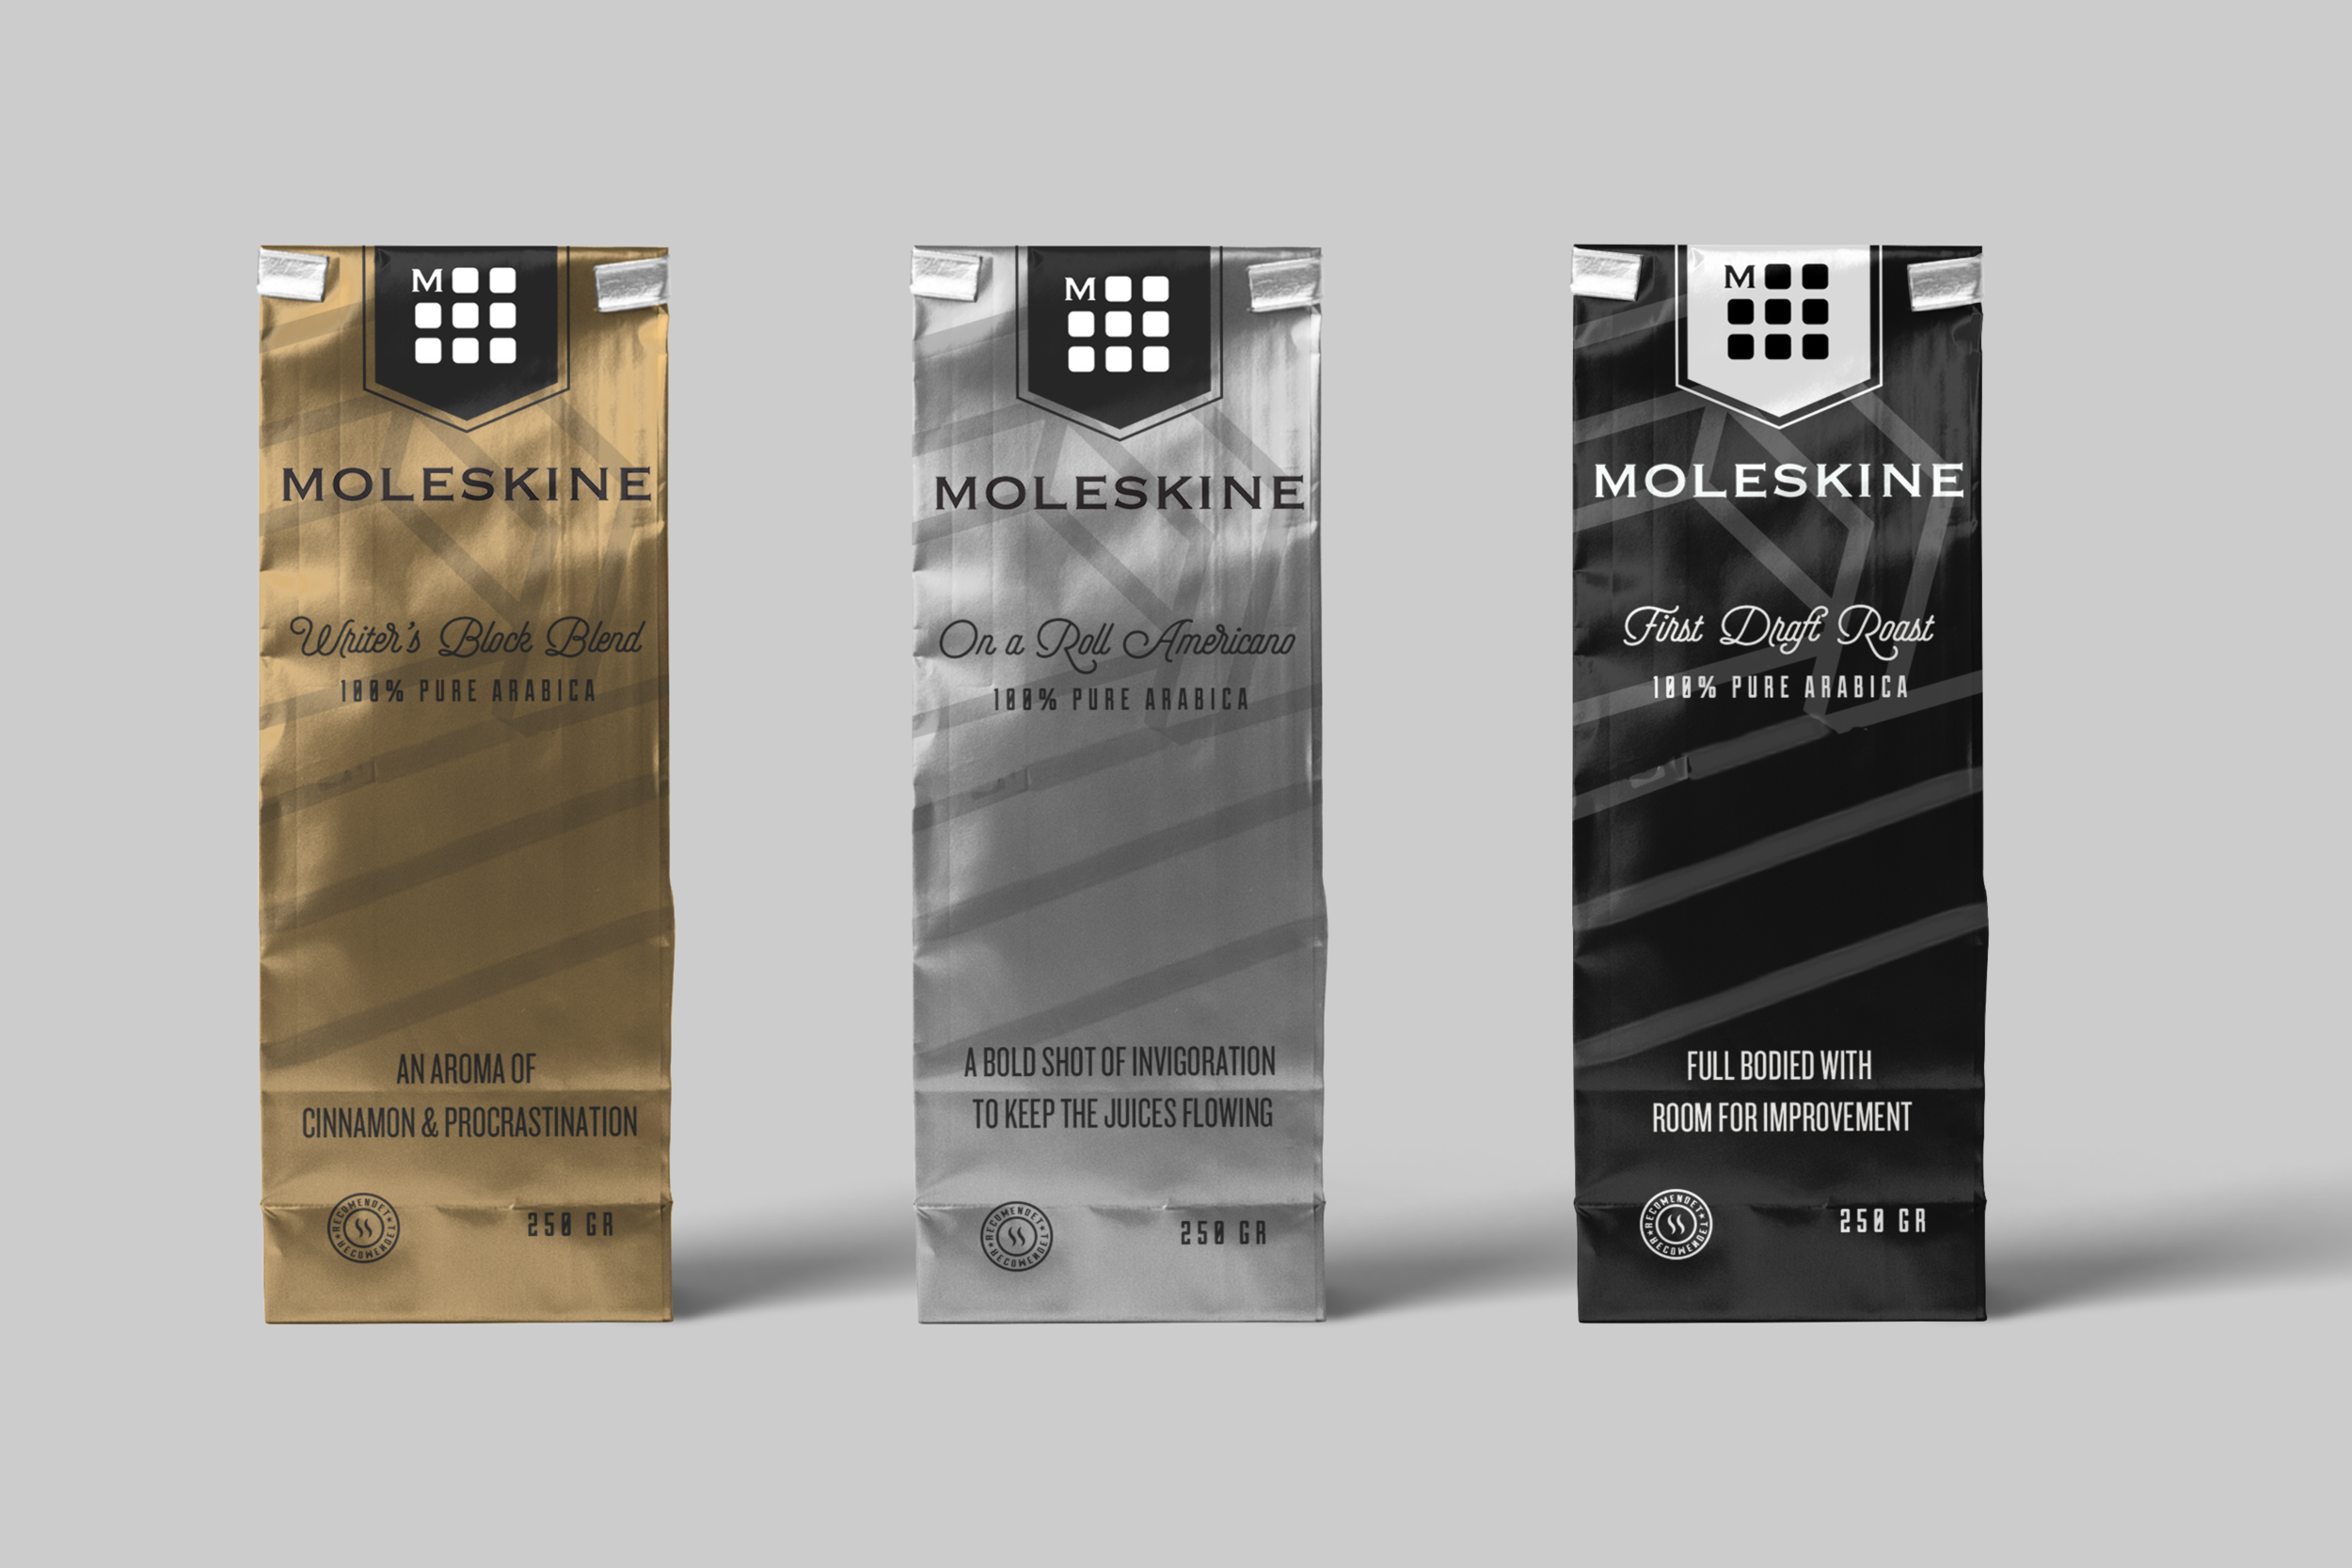 Moleskine Coffee blends give you an extra boost to start creating.  Writer's Block Blend, with an aroma of cinnamon and procrastination. On a Roll Americano, offering a bold shot of invigoration to keep the juices flowing. First Draft Roast, full-bodied with room for improvement.